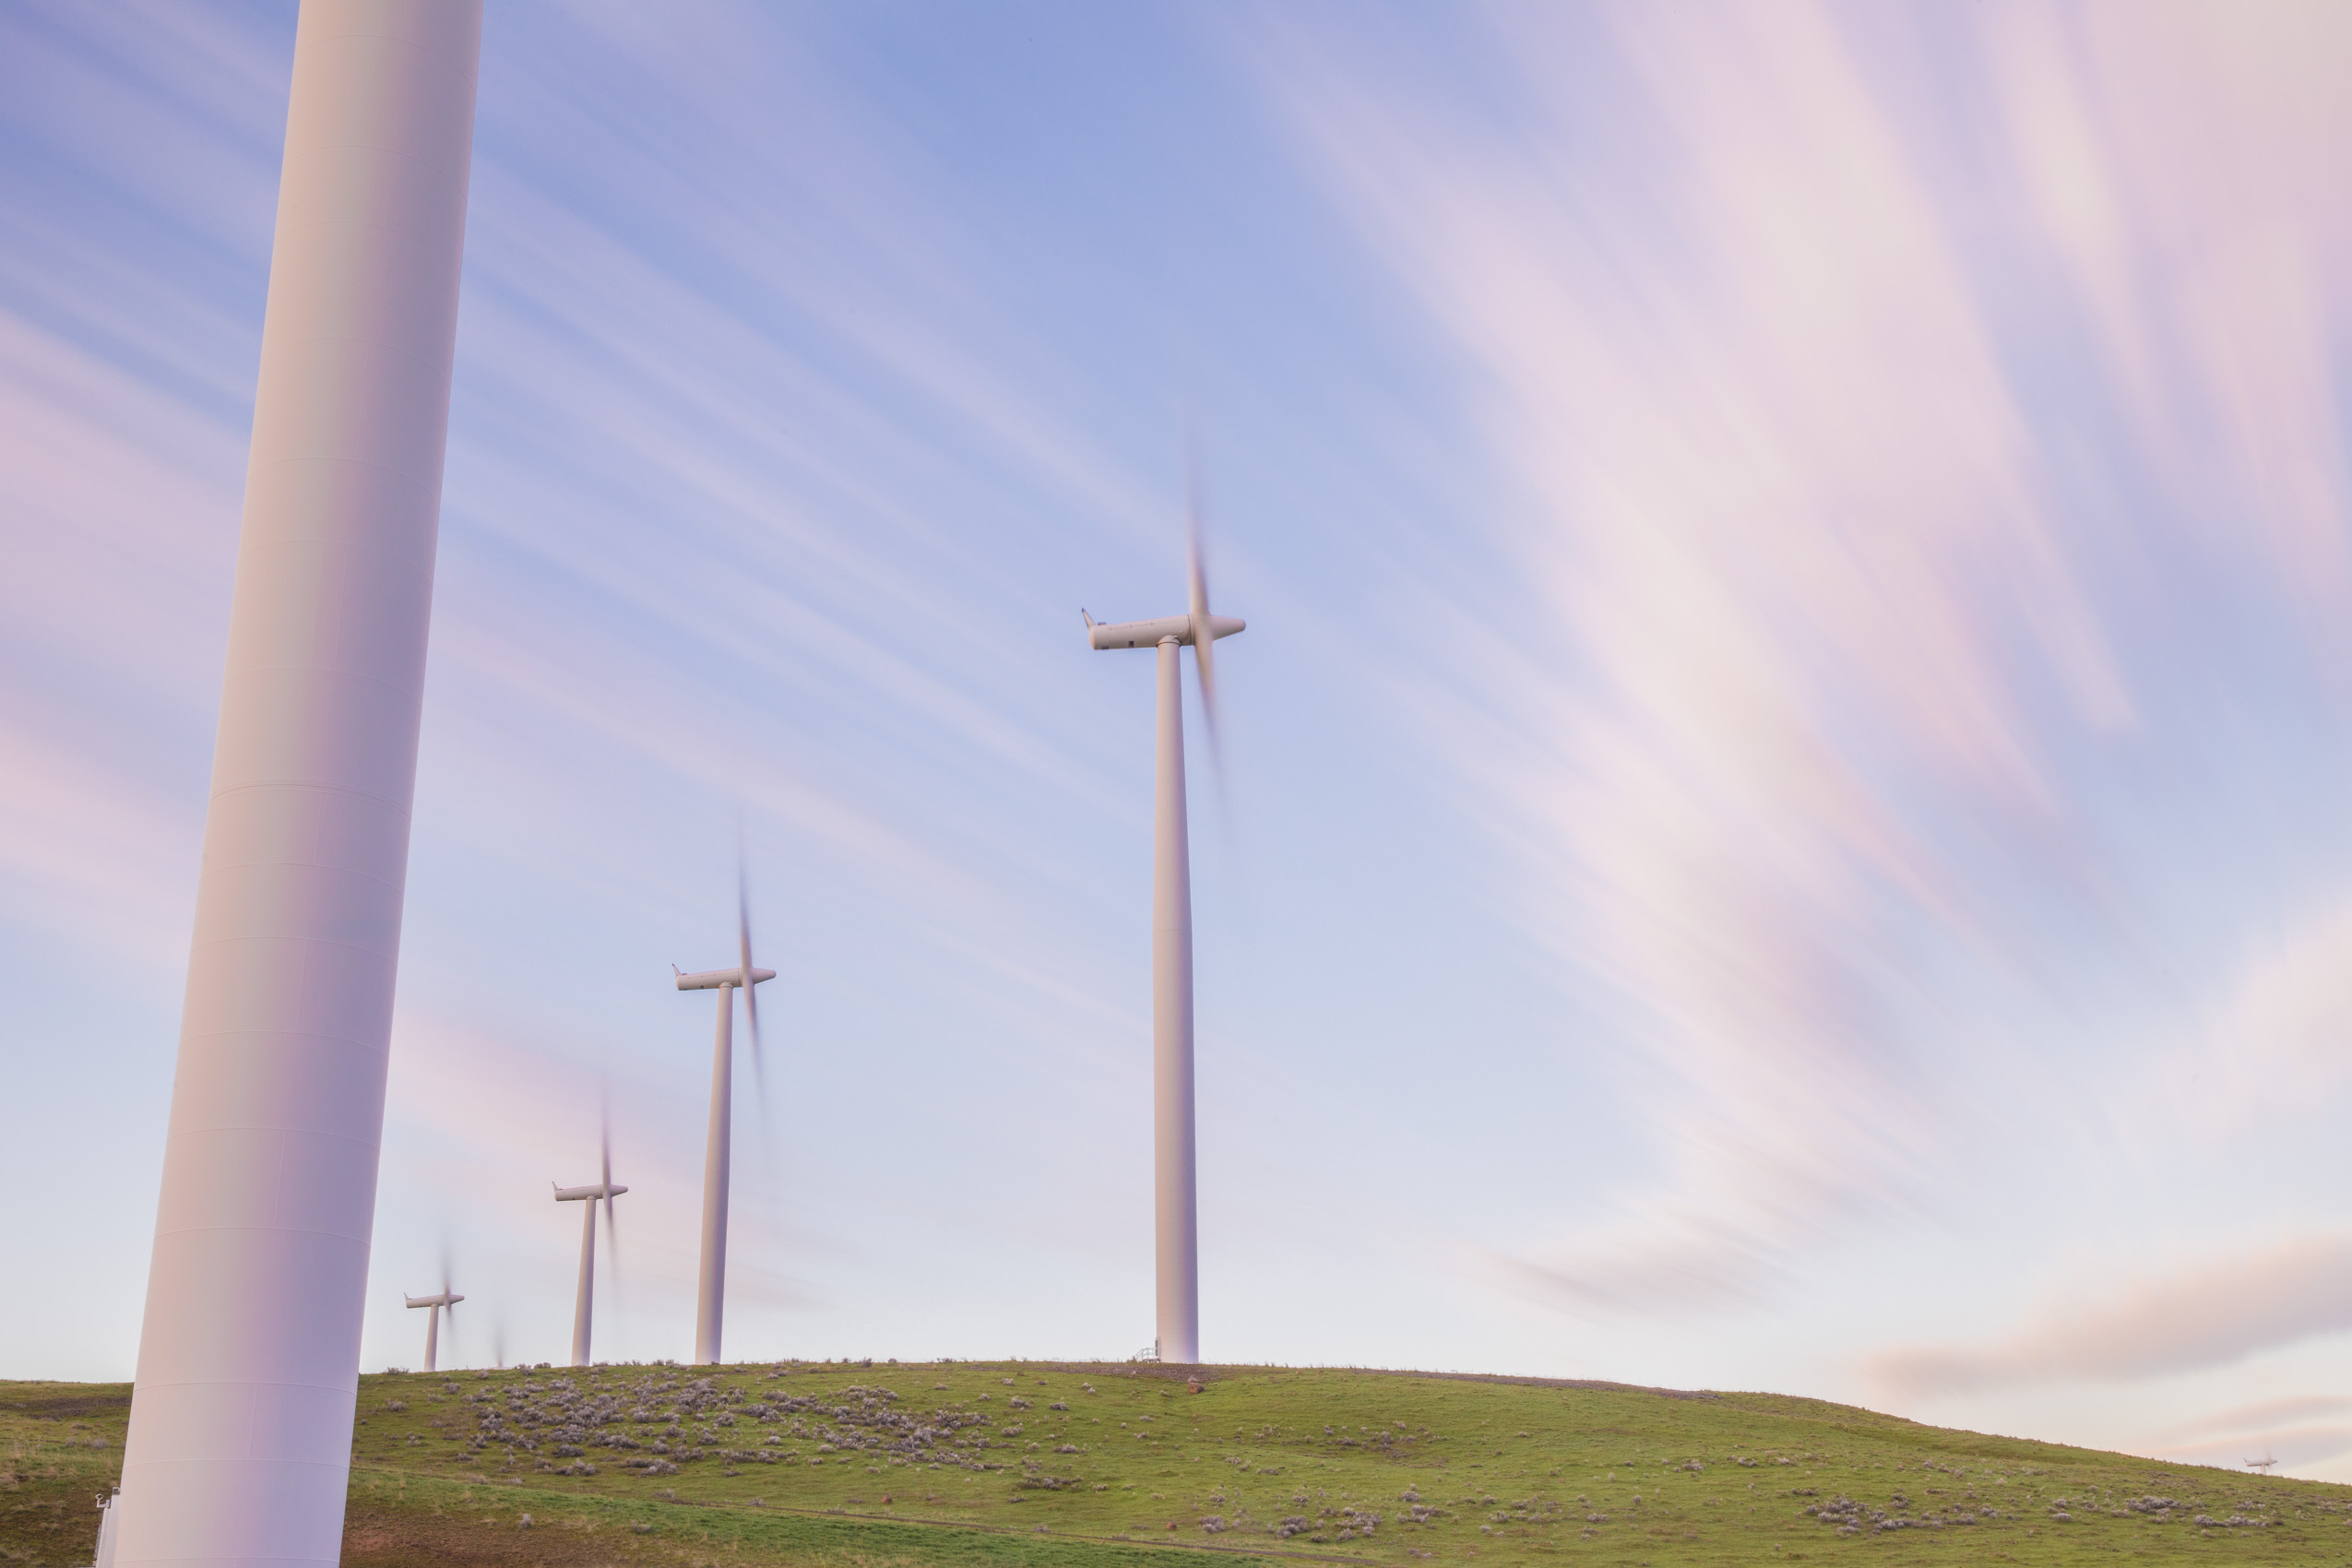 Renewable energy wind farm, wind turbines at sunrise by photographer Rich Crowder